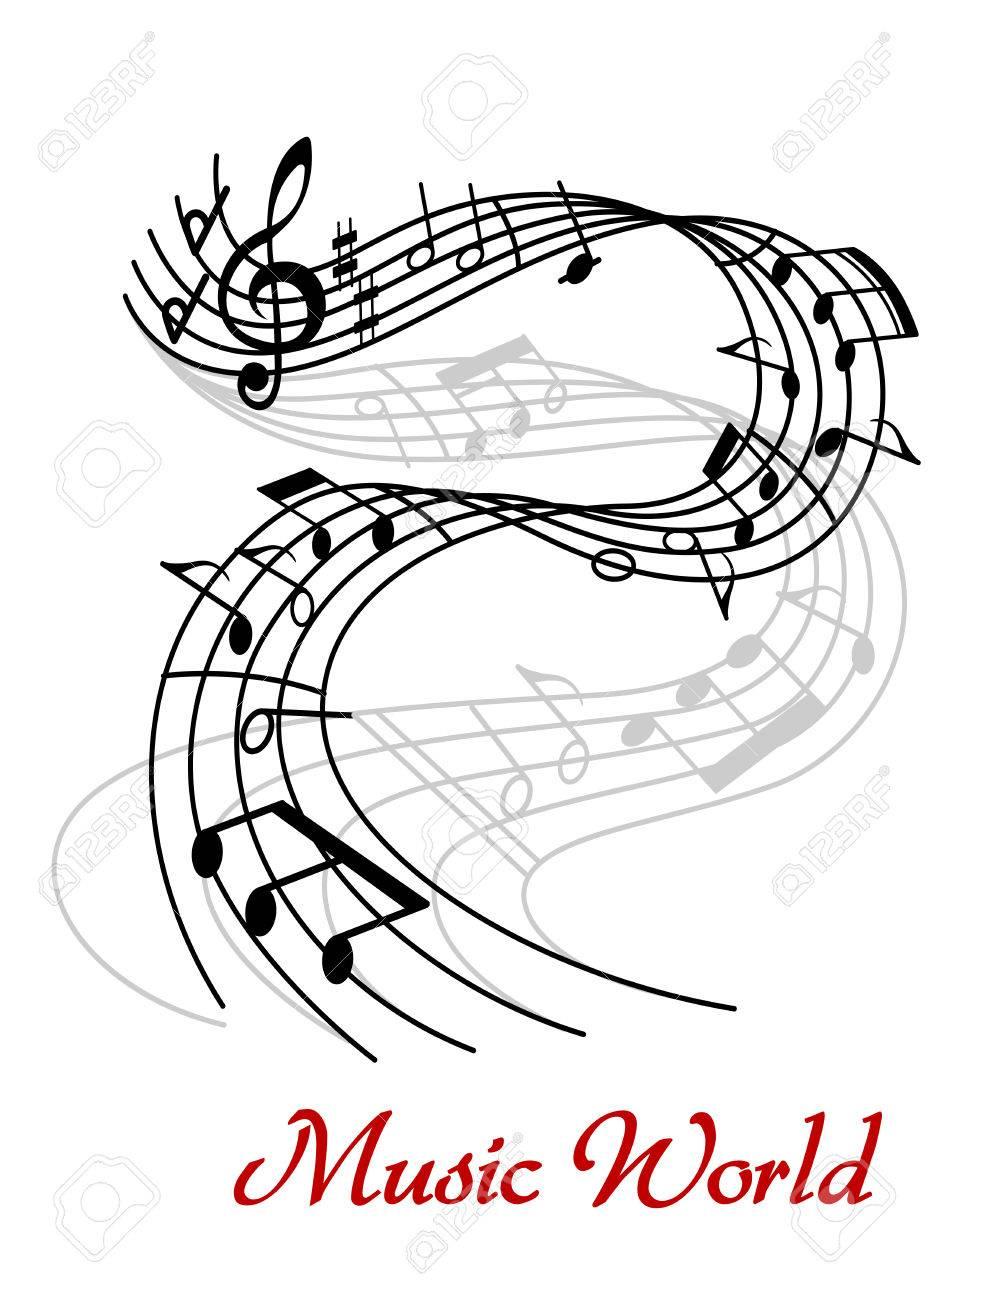 Poster design notes - Music World Poster Design With A Black And White Swirling Wave With Clef And Music Notes